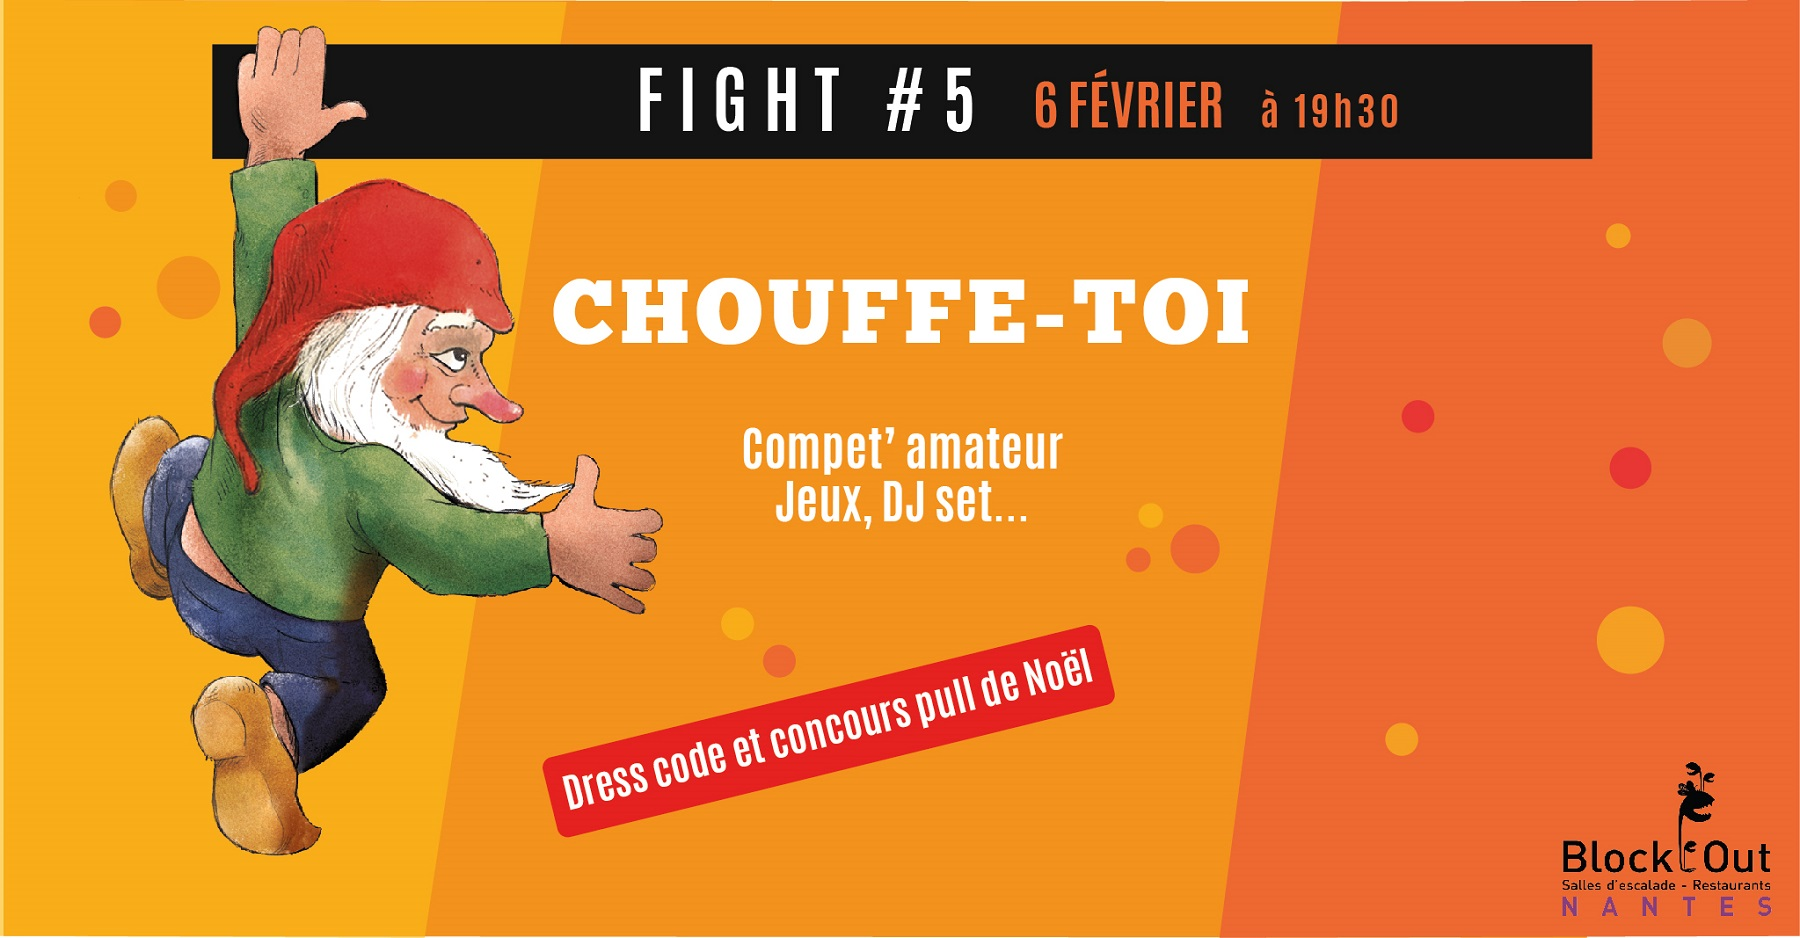 Fight Chouffe-Toi